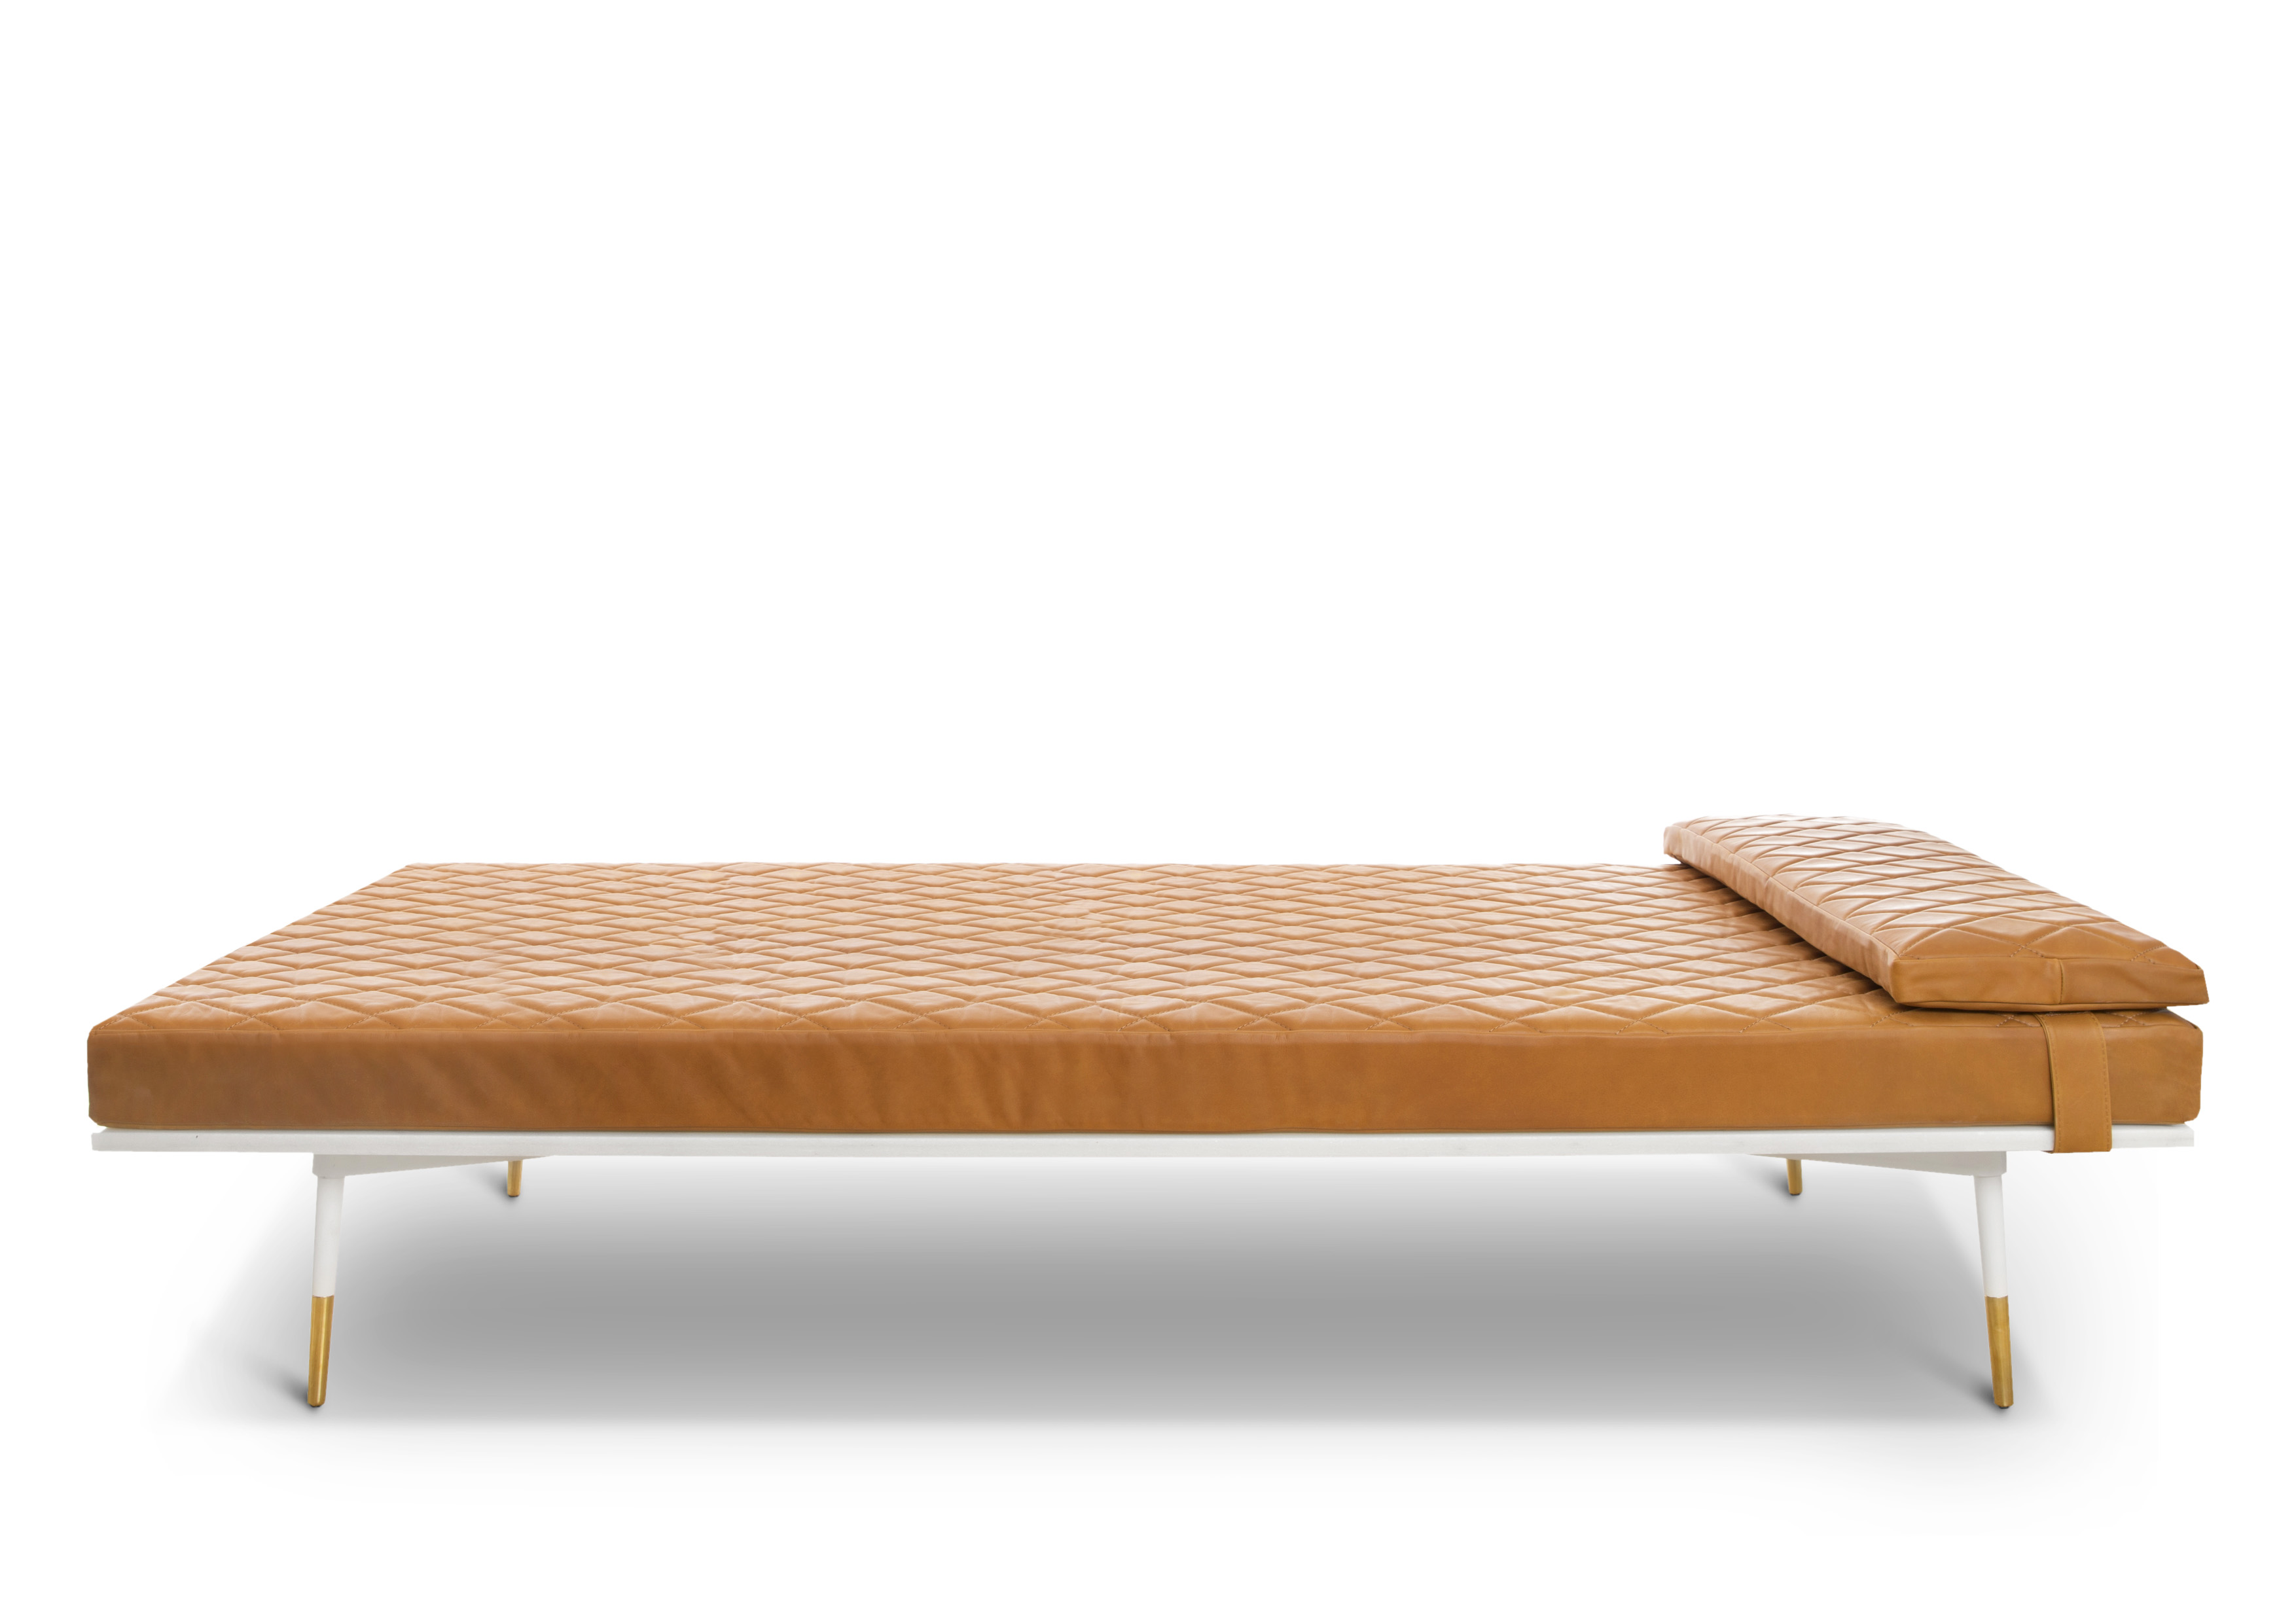 MIDNIGHT COGNAC DAYBED